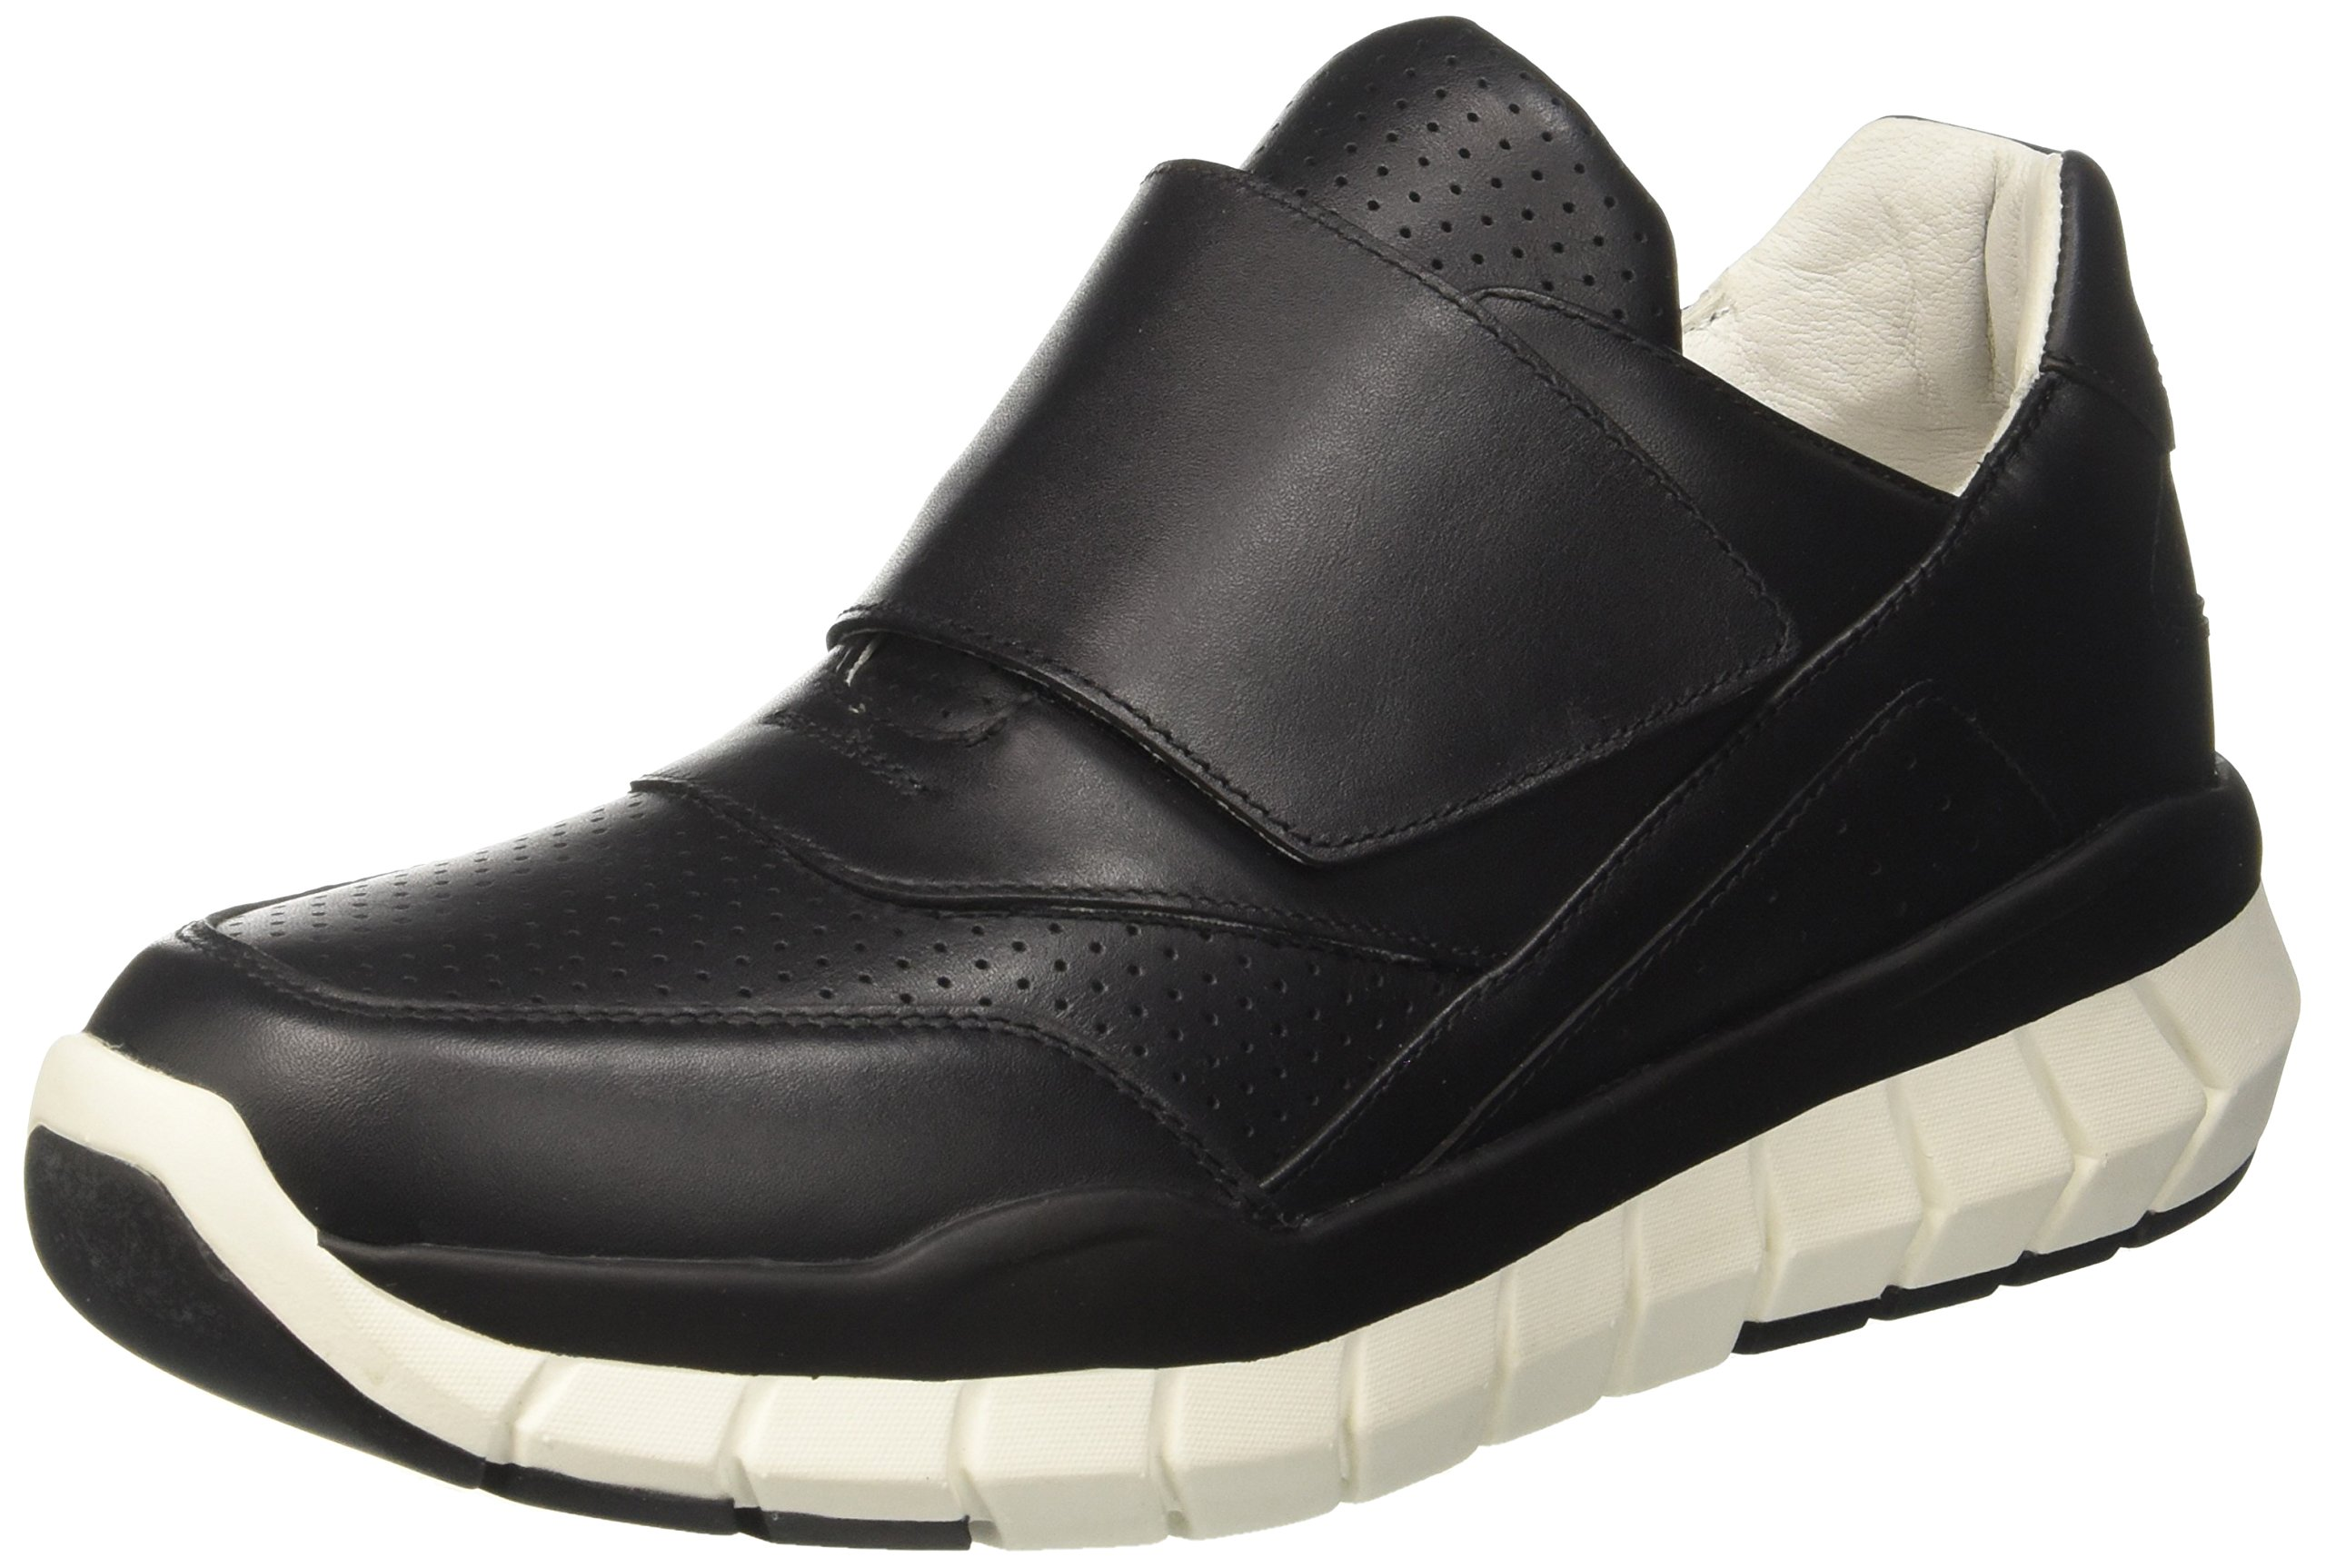 99941 Fighter 2092Baskets Bikkembergs HommeNoirblack Eu wm8n0vN